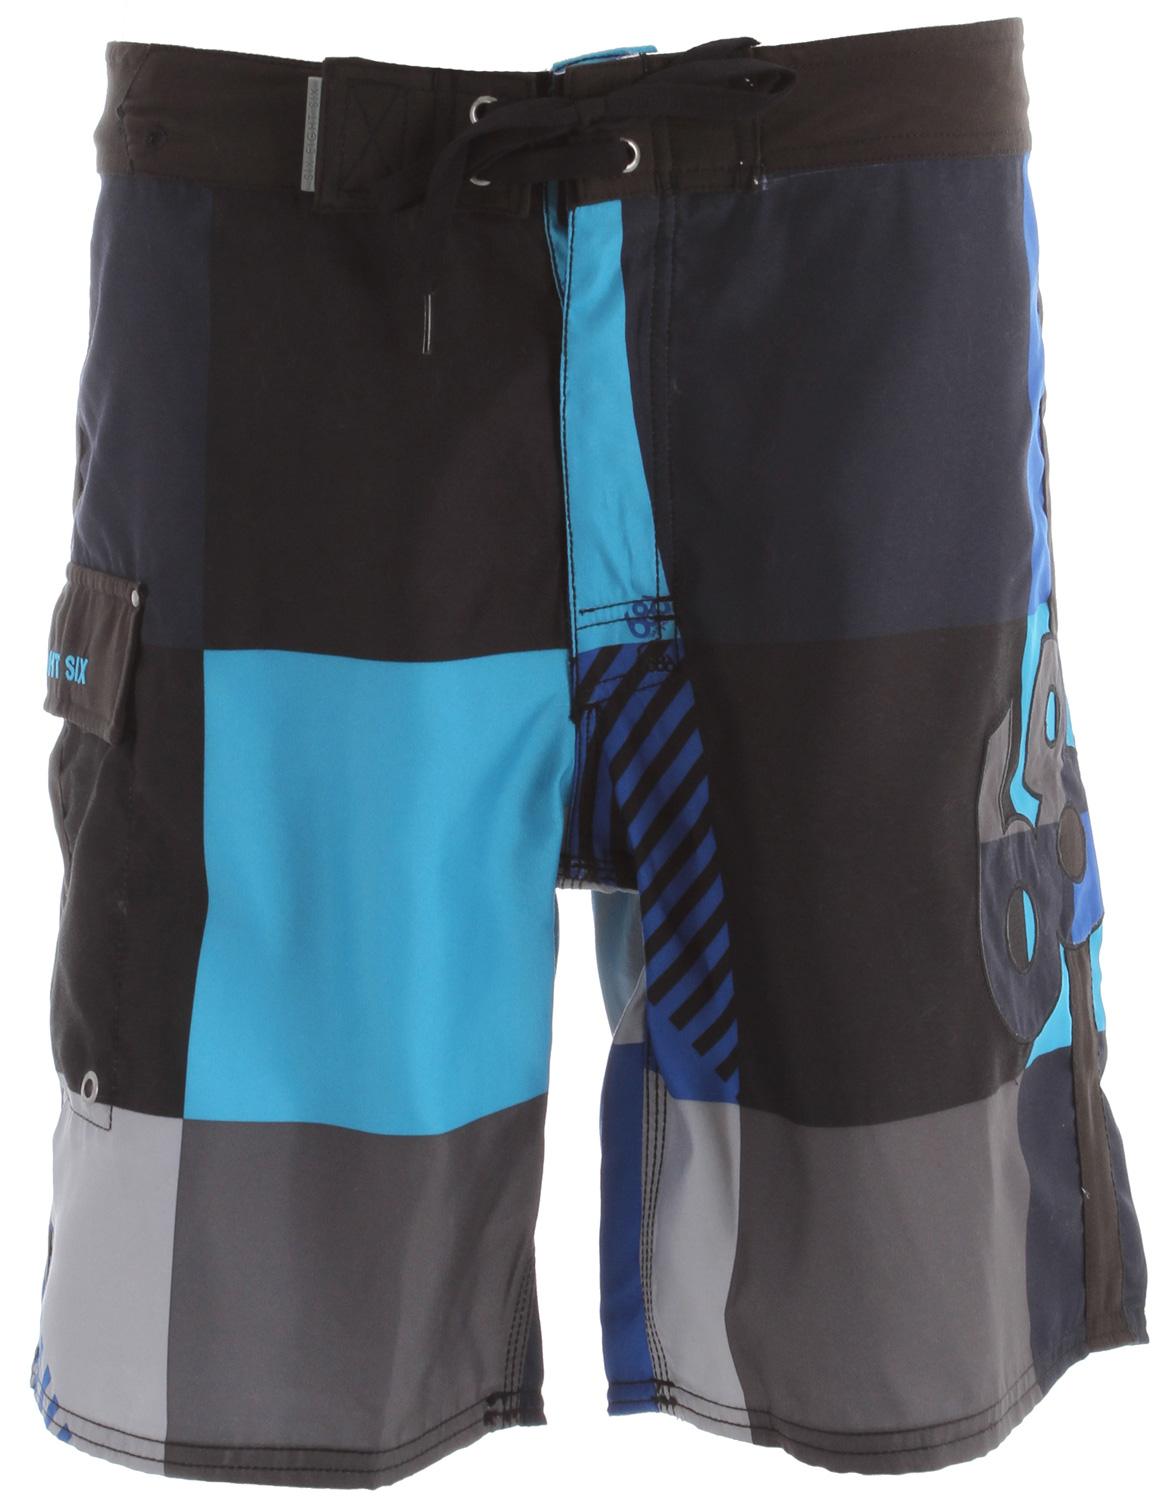 "Surf Key Features of the 686 Cube Boardshorts: 100% polyester micro fiber Spandex fly gusset Waistband stash pocket Angled side leg pocket trimmed with solid black micro fiber Retro style fitting 20"" average outseam - $54.95"